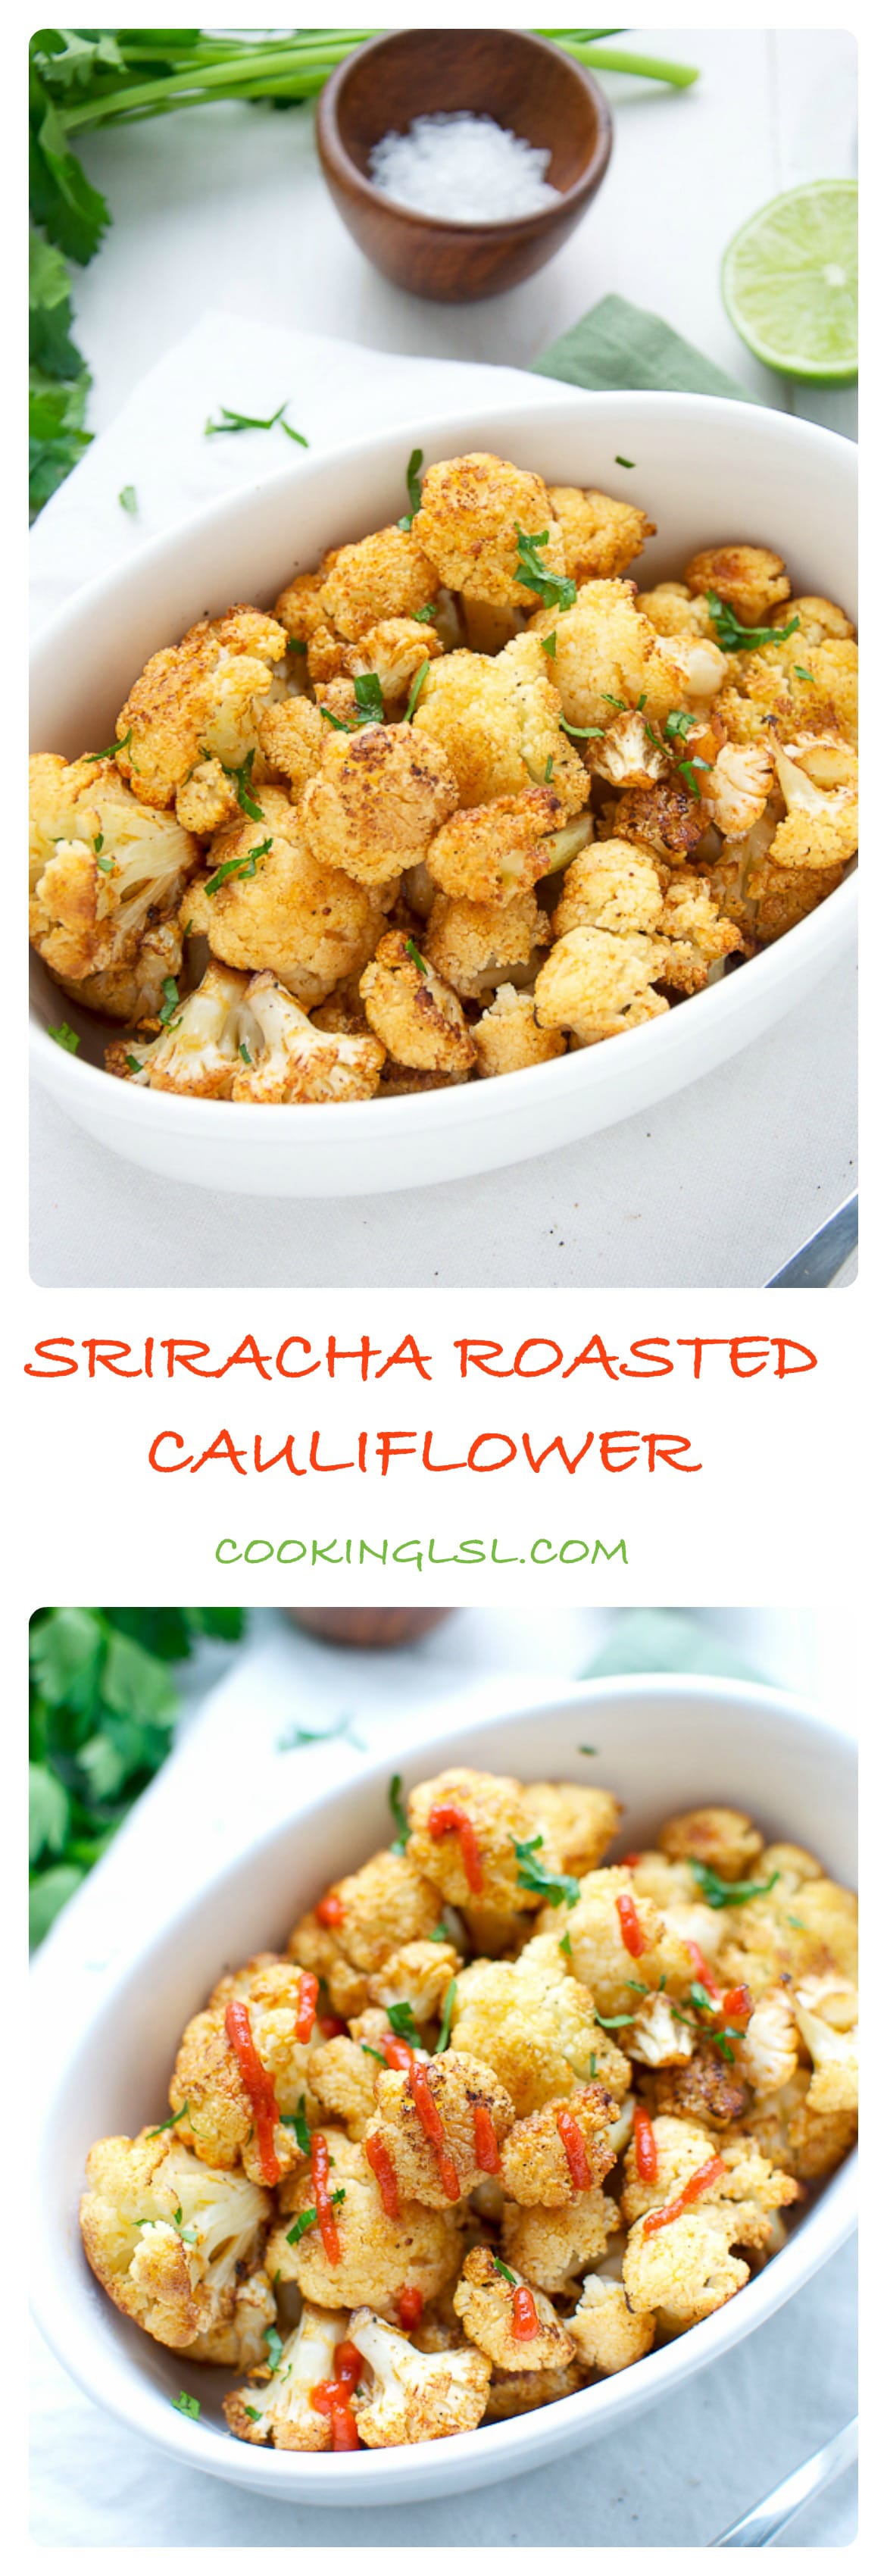 sriracha-roasted-cauliflower